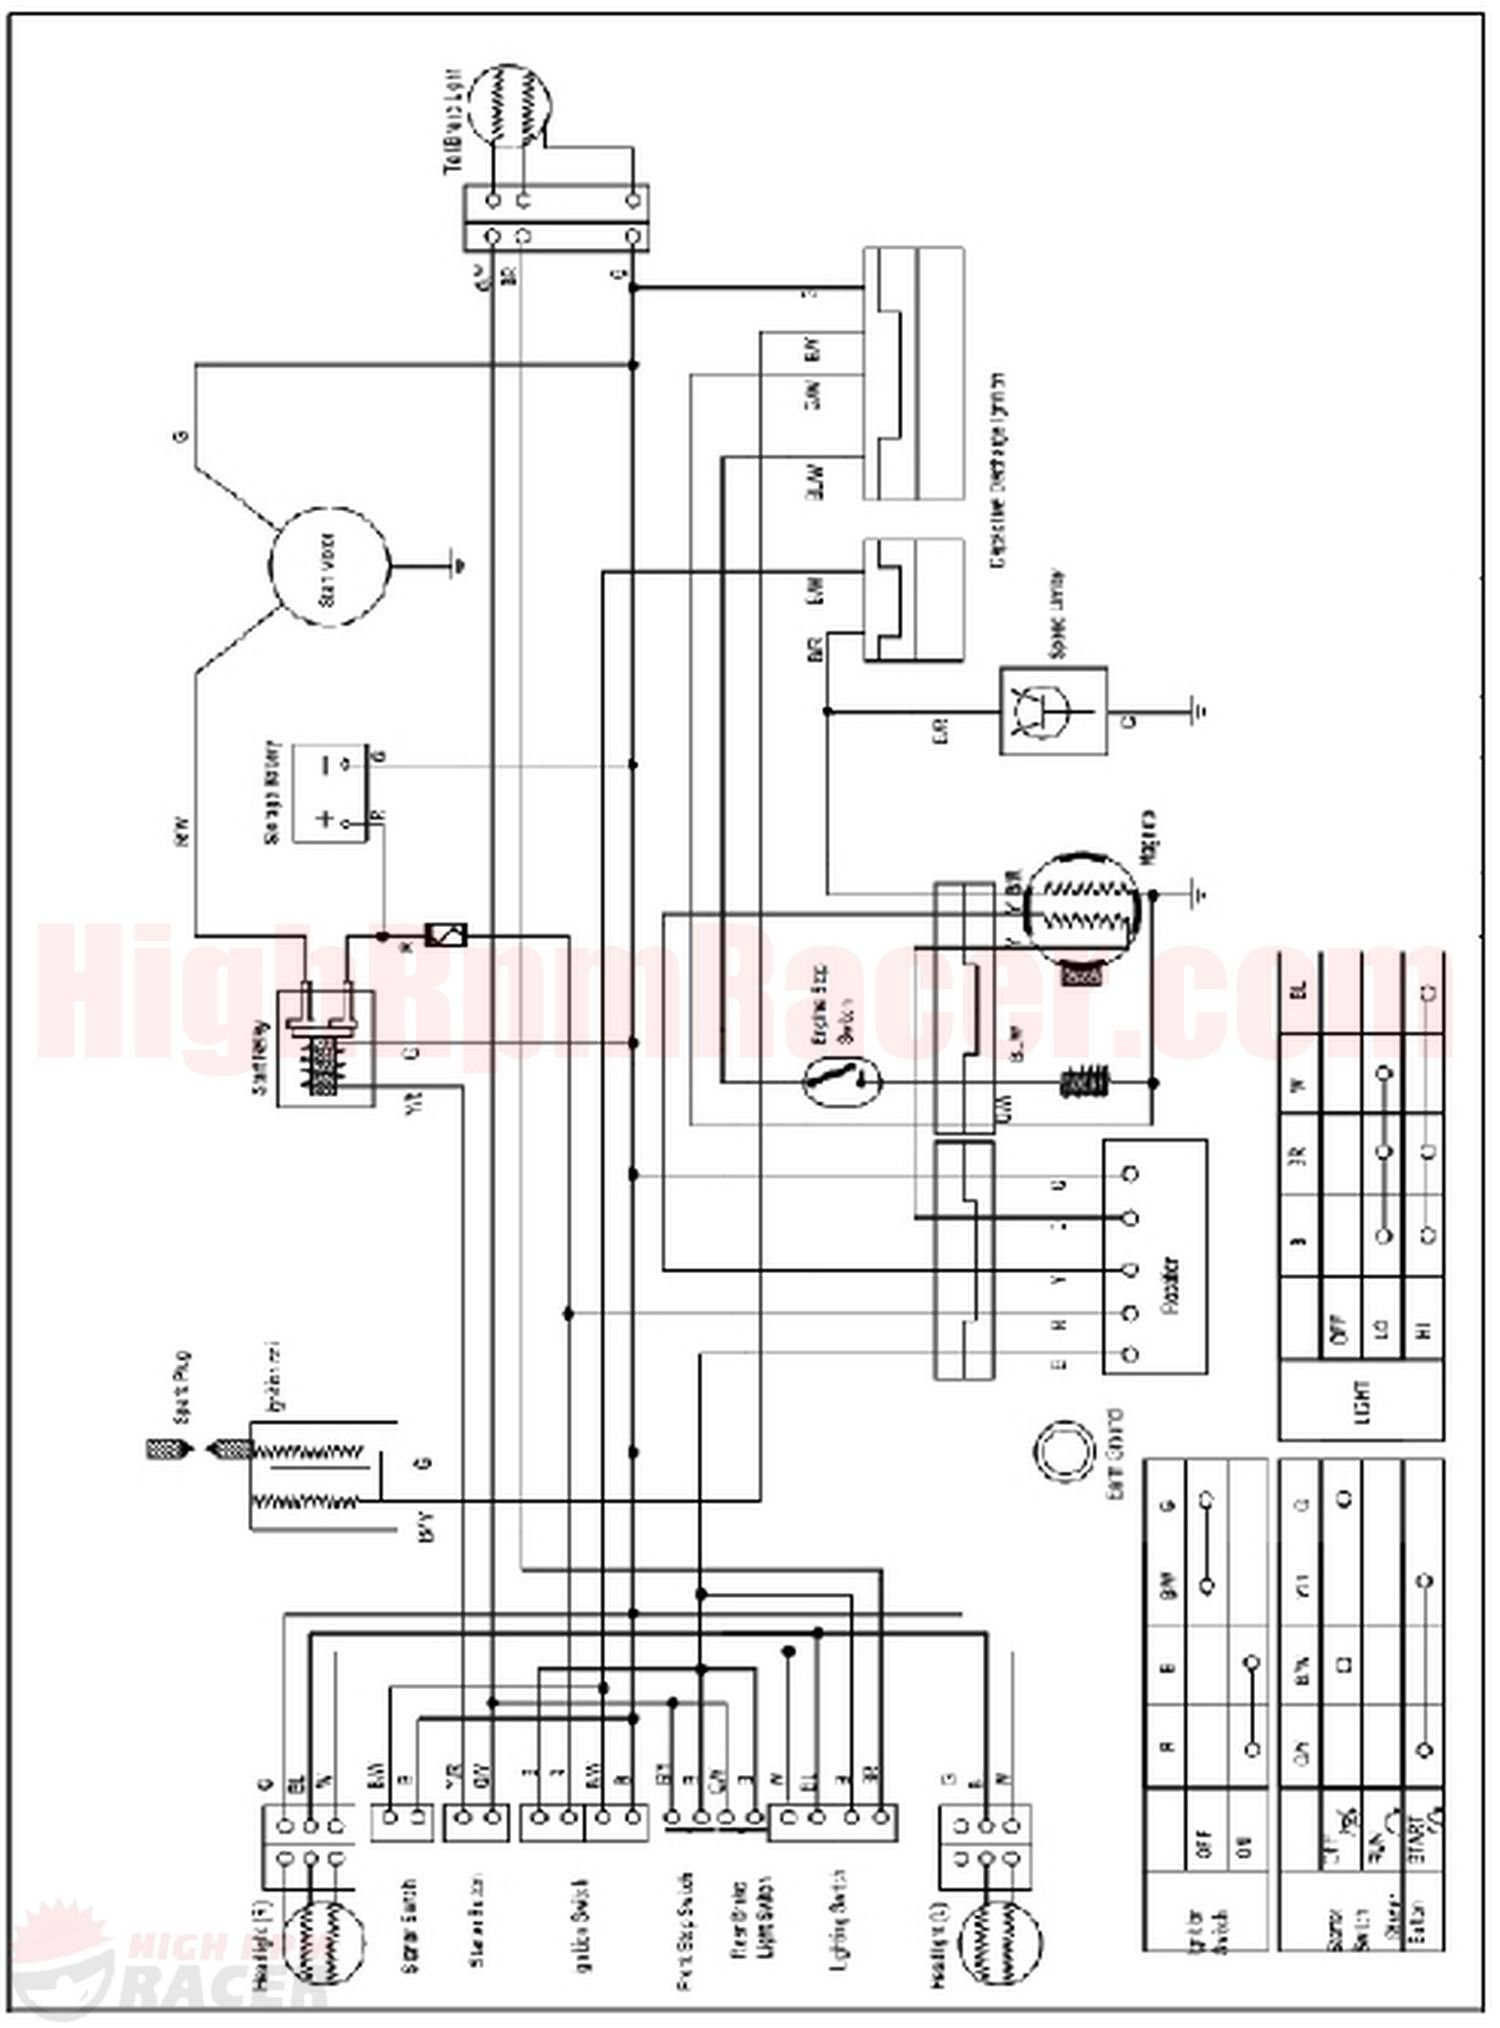 sunl250_wd sunl atv 250 wiring diagram $0 00 kazuma 50cc atv wiring diagram at webbmarketing.co